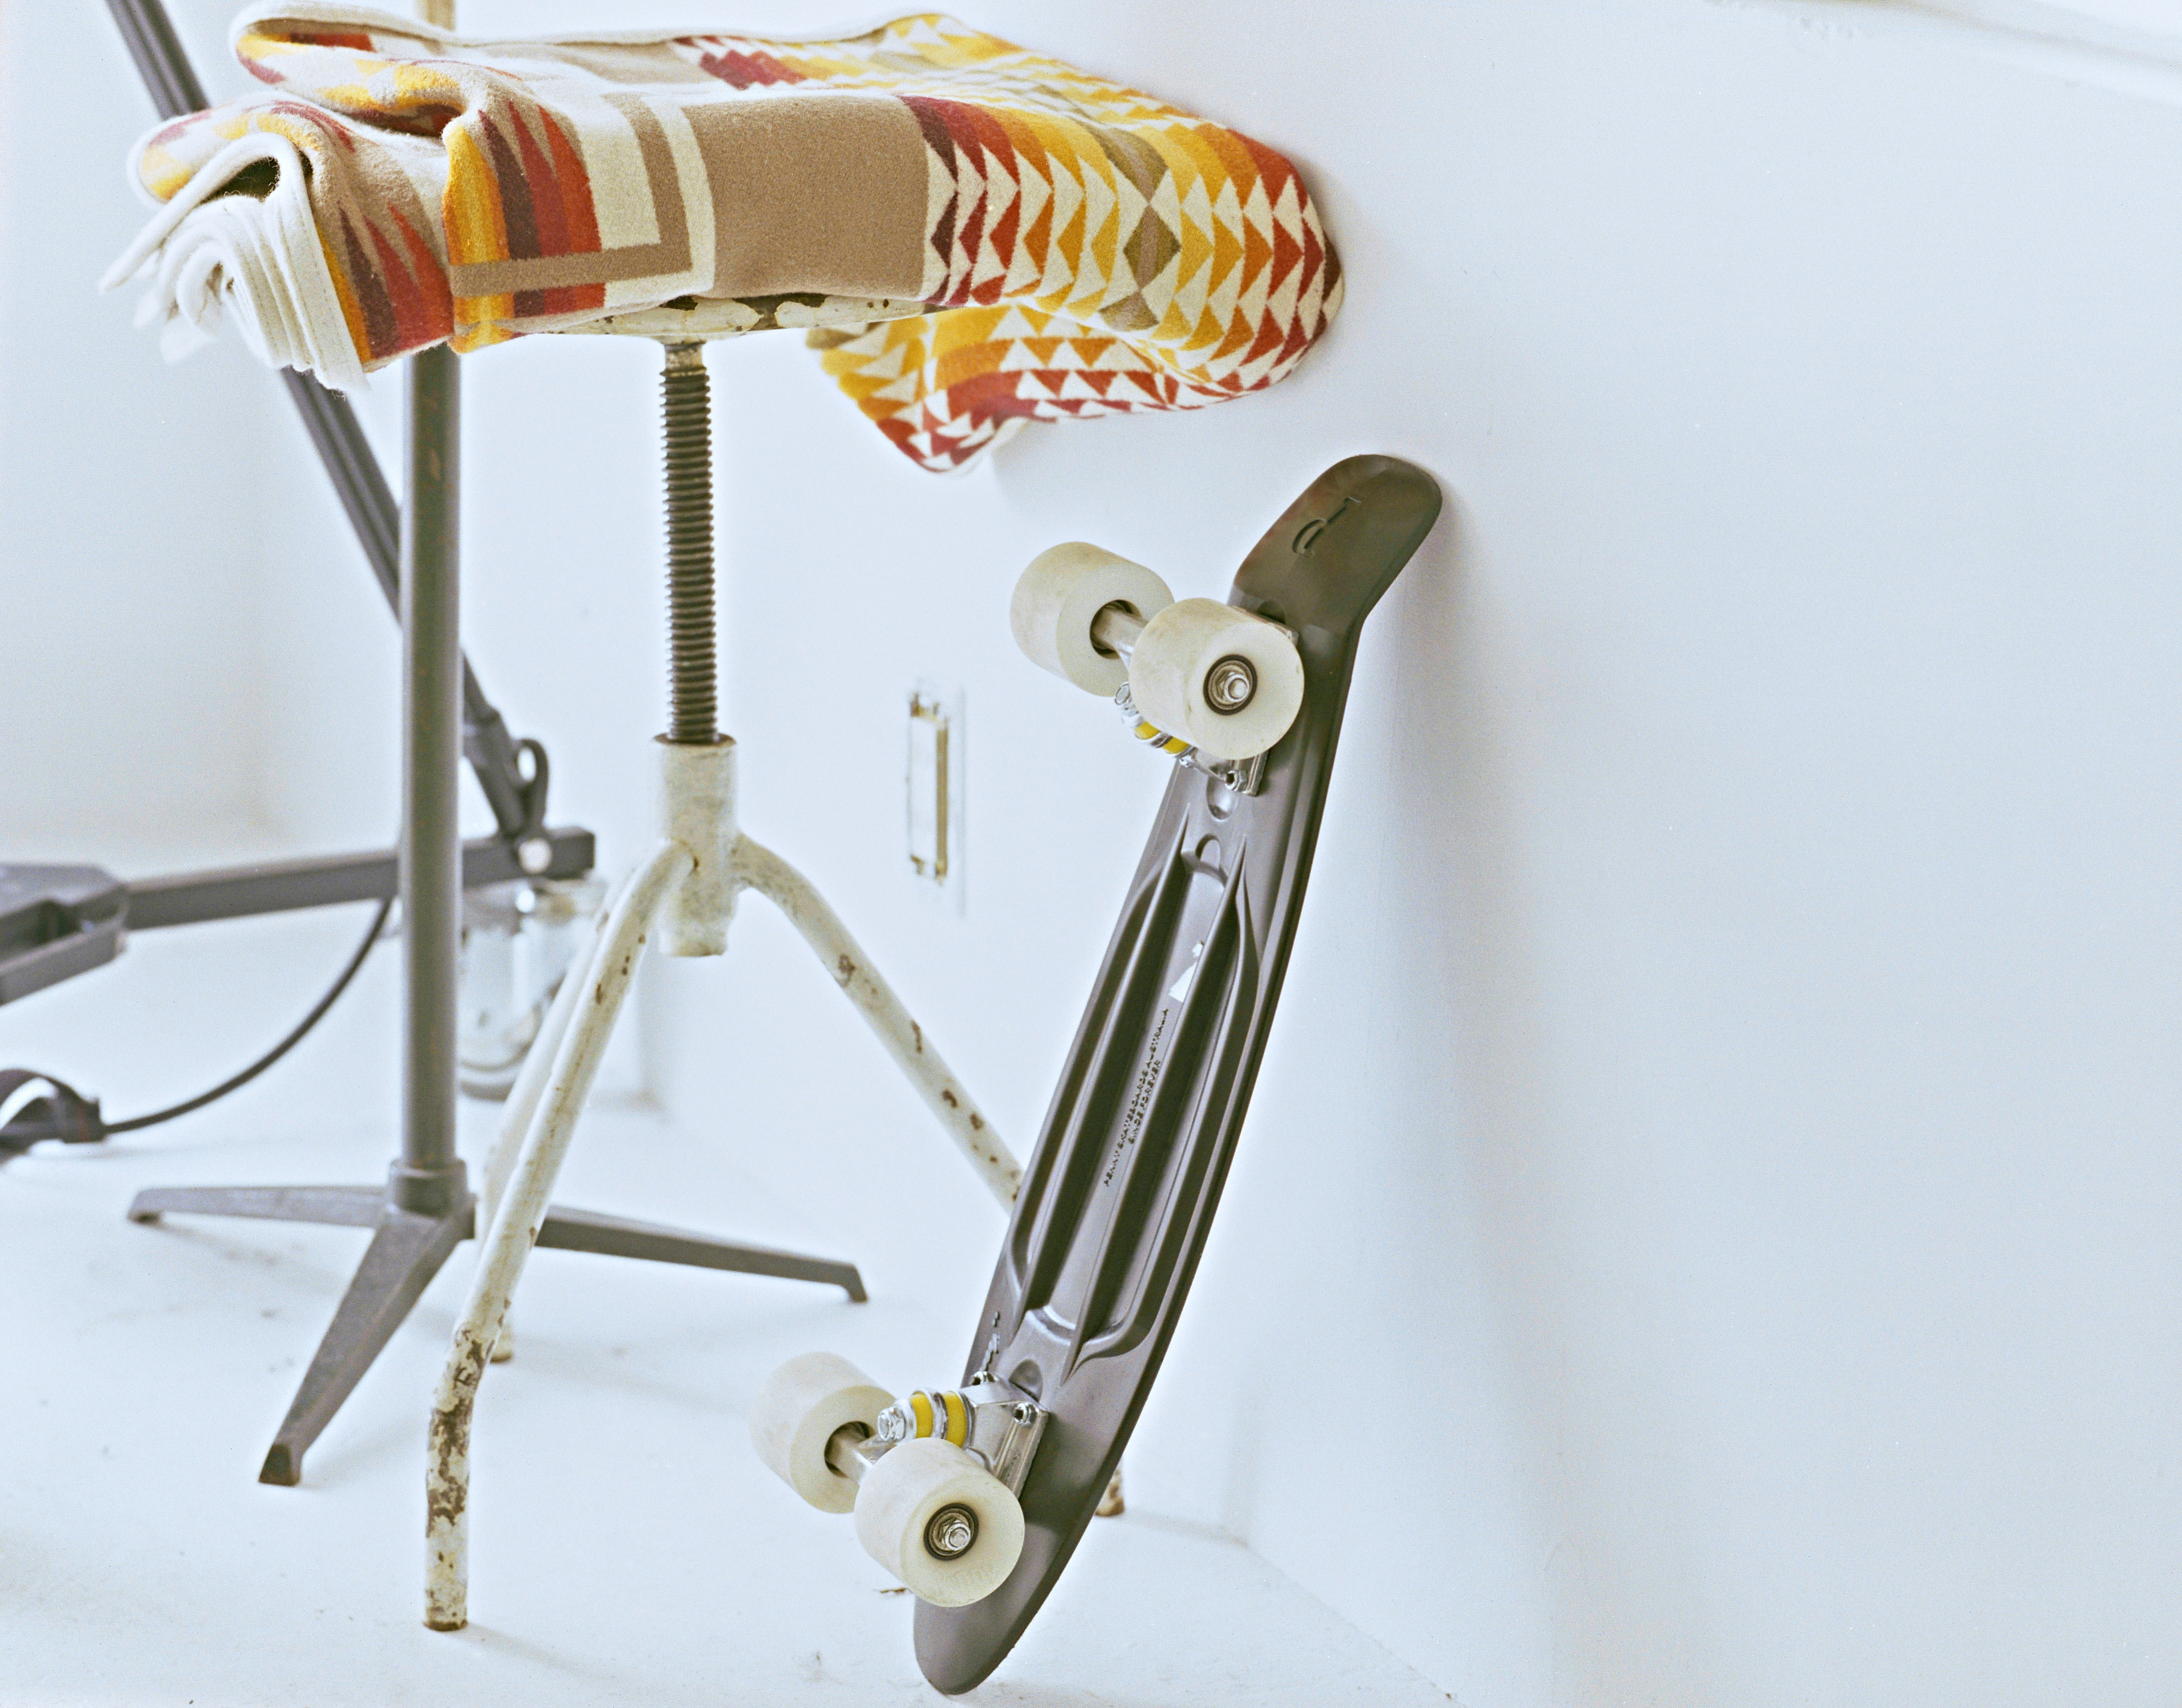 A skateboard is leaning against the white wall next to a footstool with a colorful blanket.